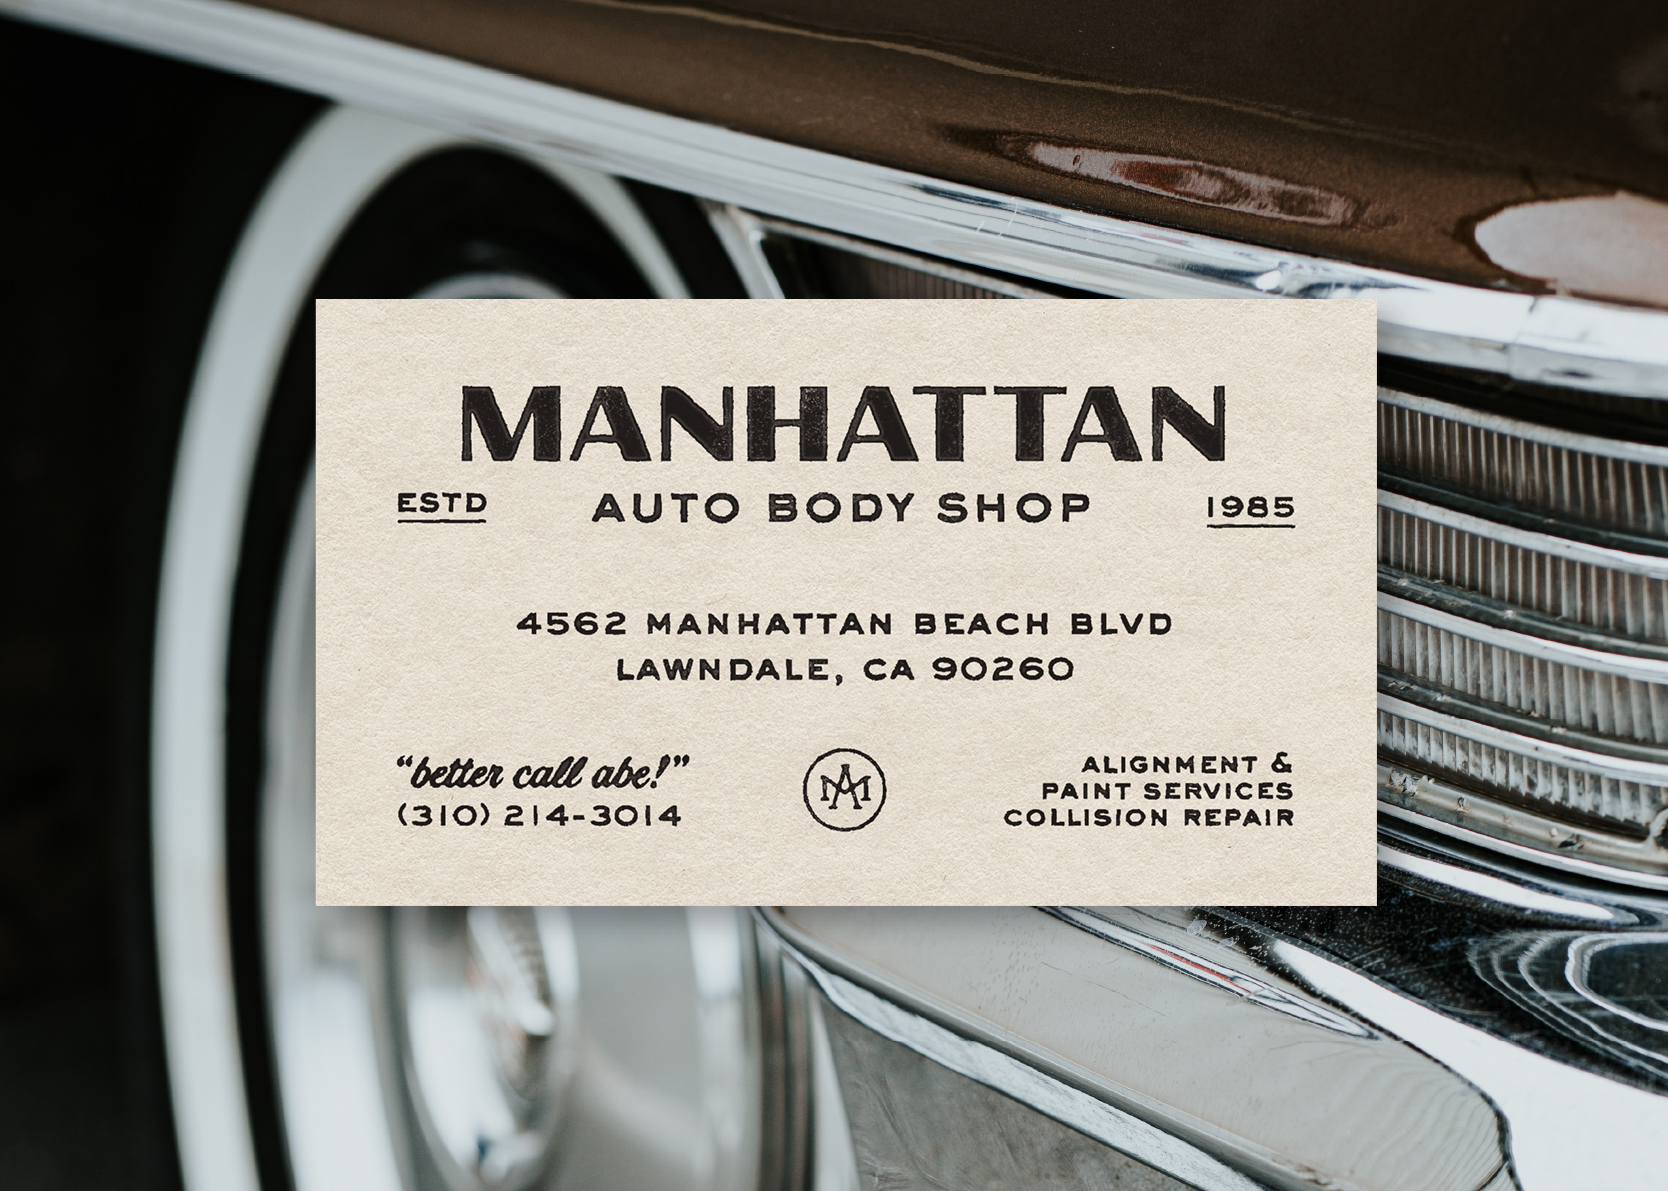 ManhattanAuto_BusinessCard.jpg